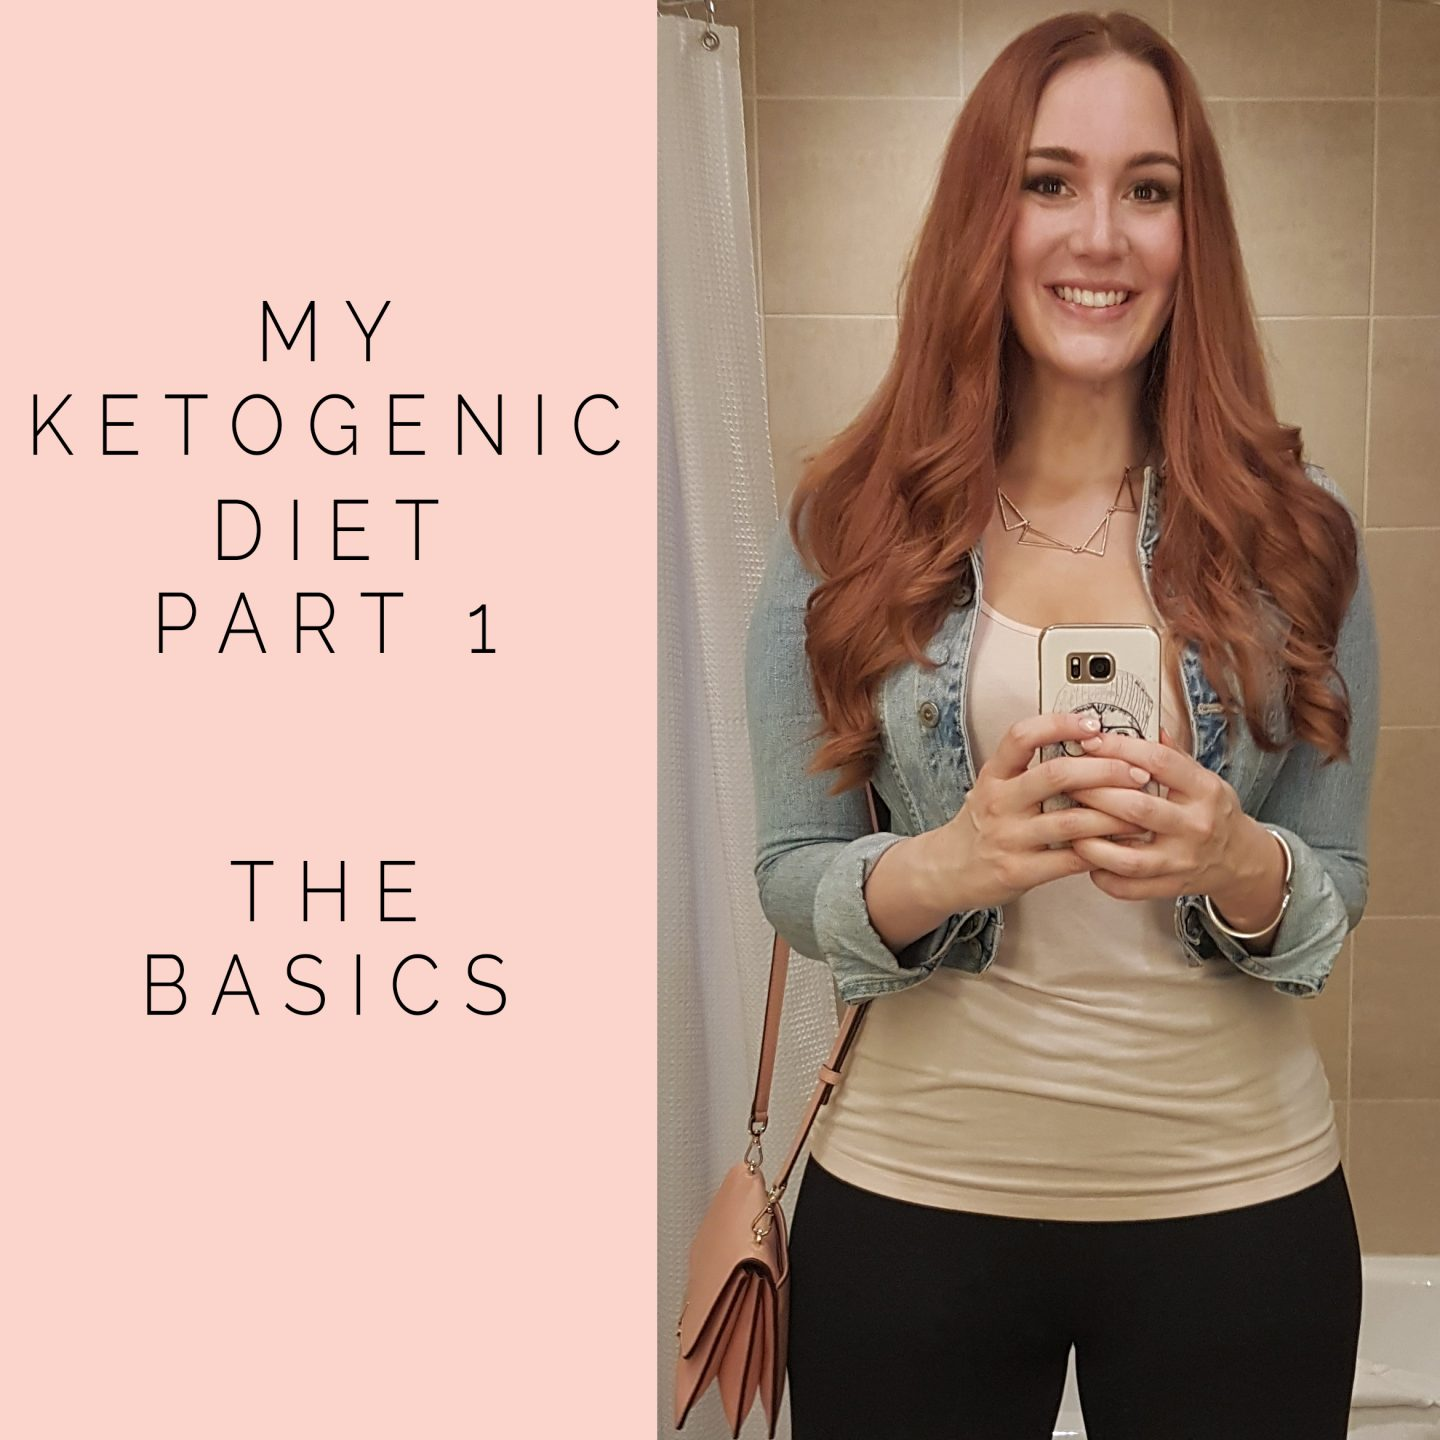 My Ketogenic Diet, Part 1: The Basics